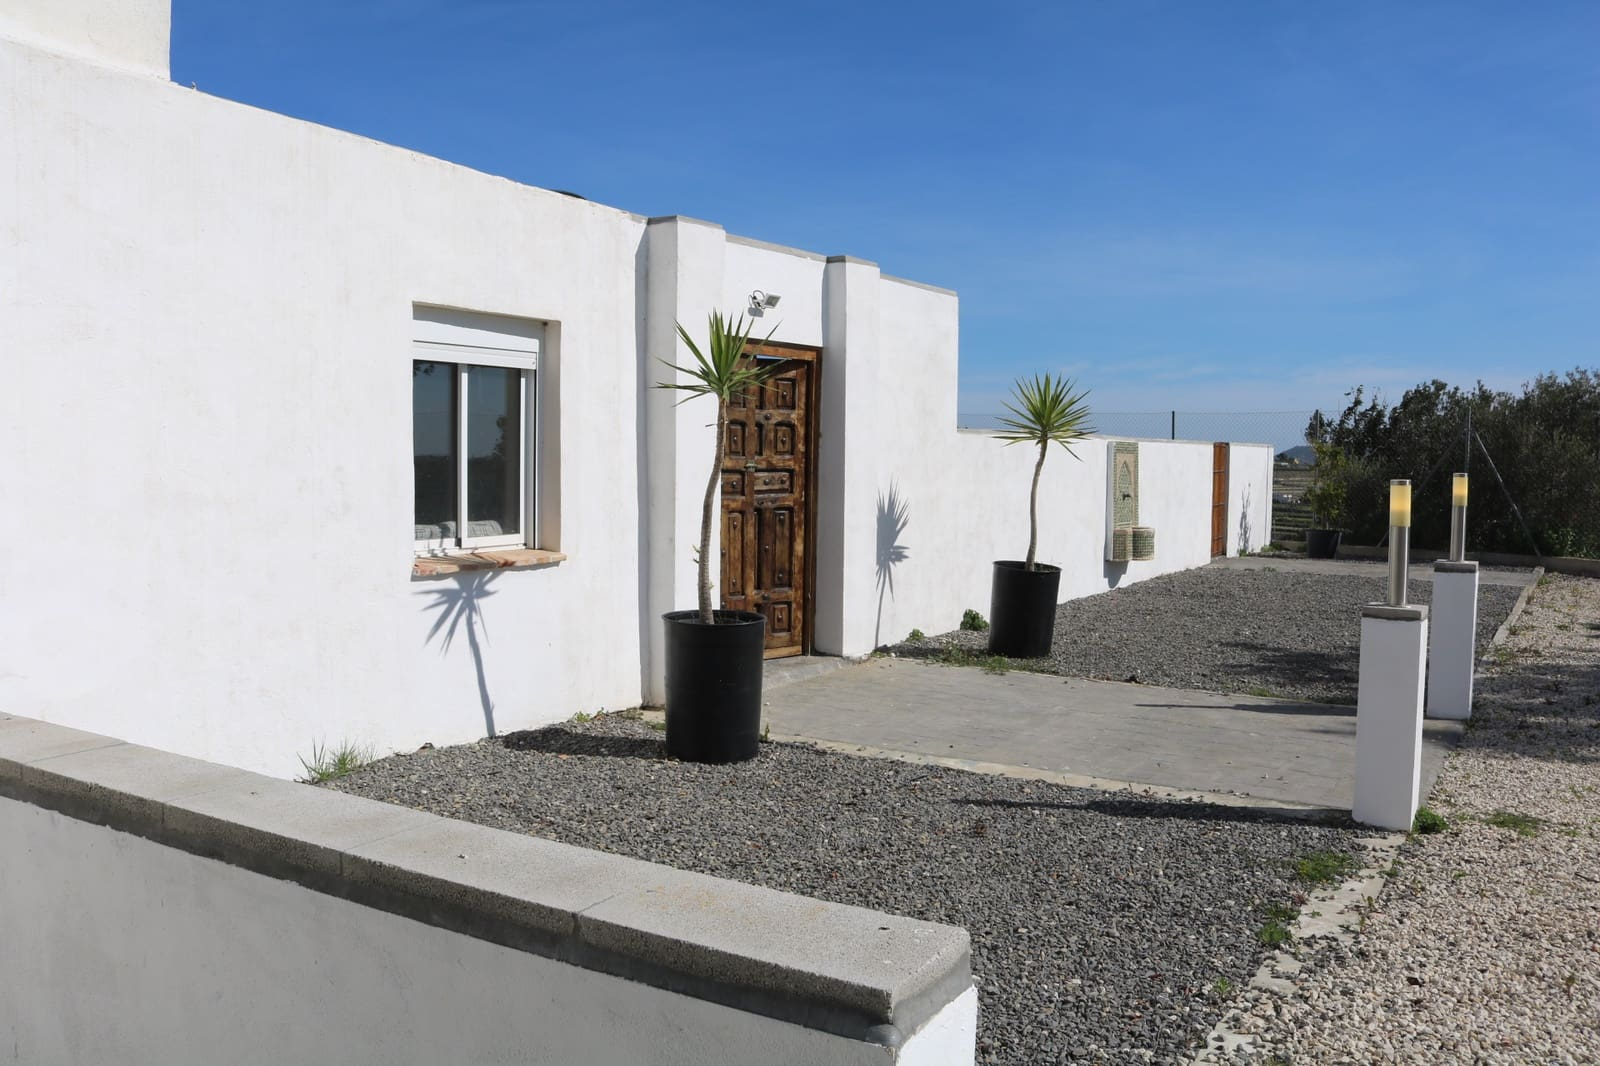 1 bedroom Finca/Country House for sale in Teulada - € 200,000 (Ref: 5222716)